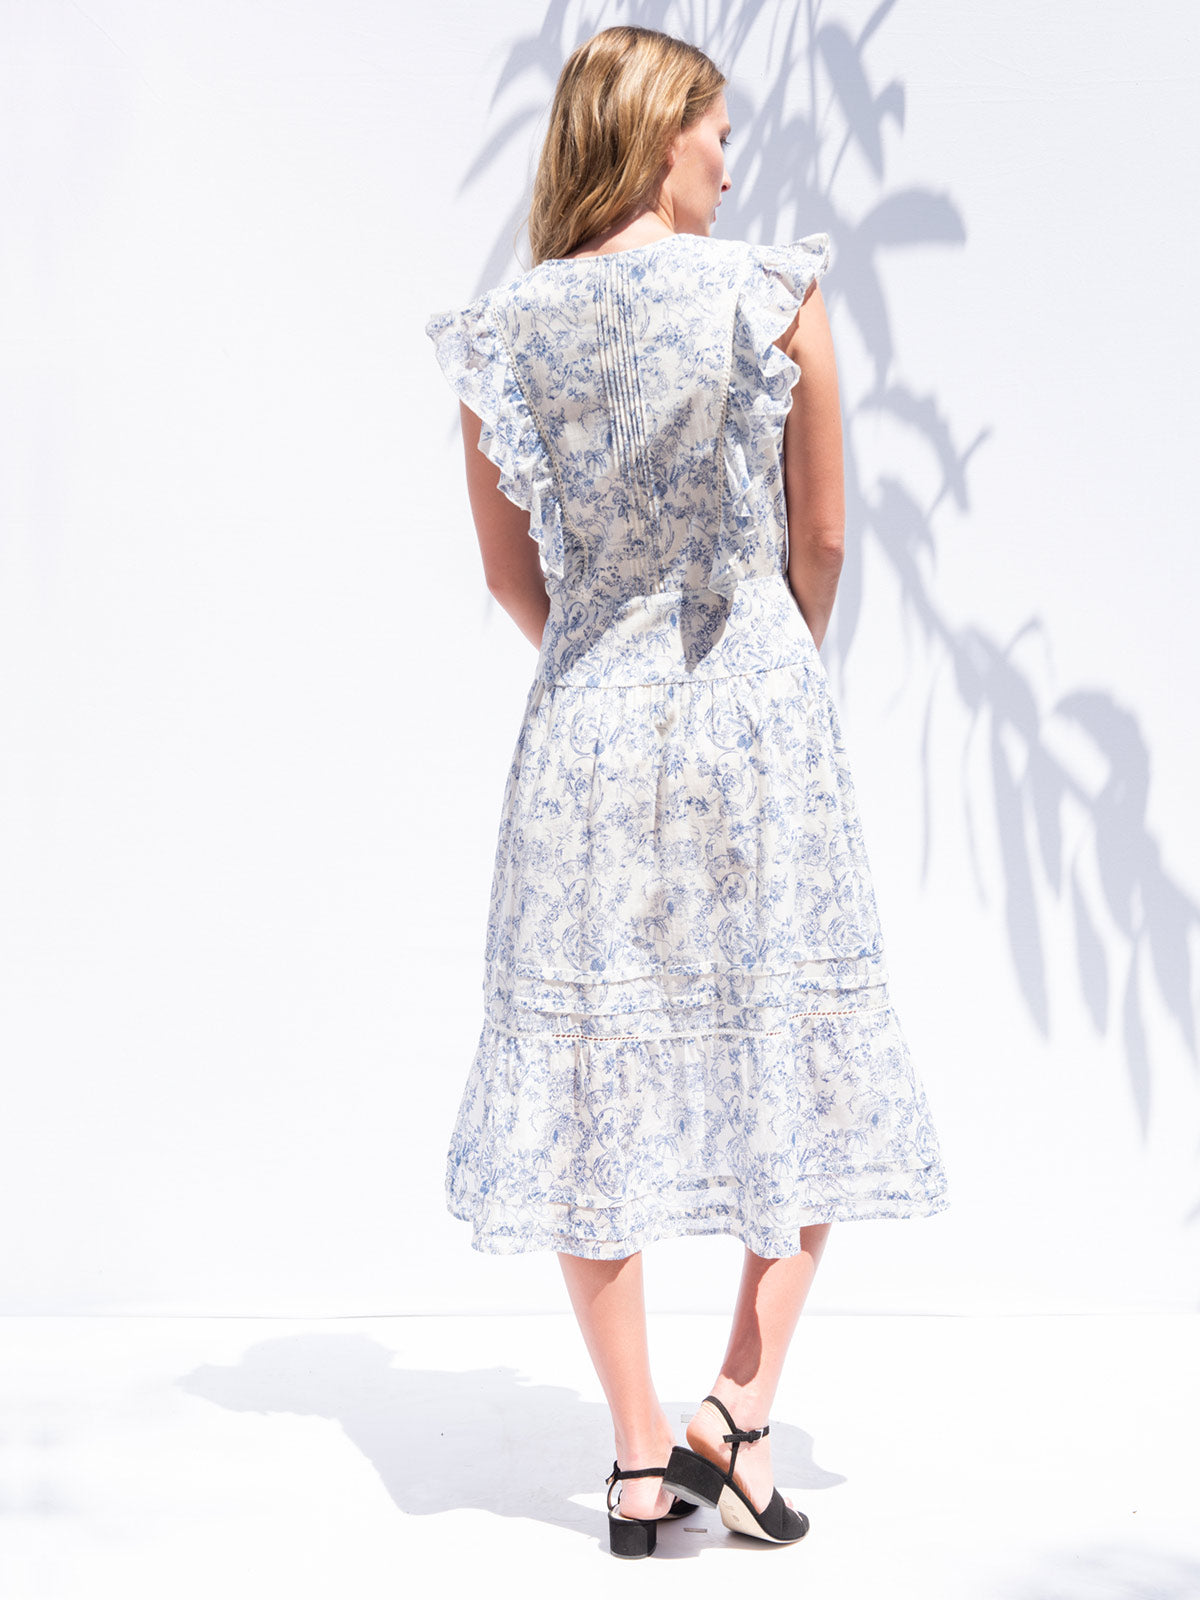 Chanterelle Dress | Delft Blue Chanterelle Dress | Delft Blue